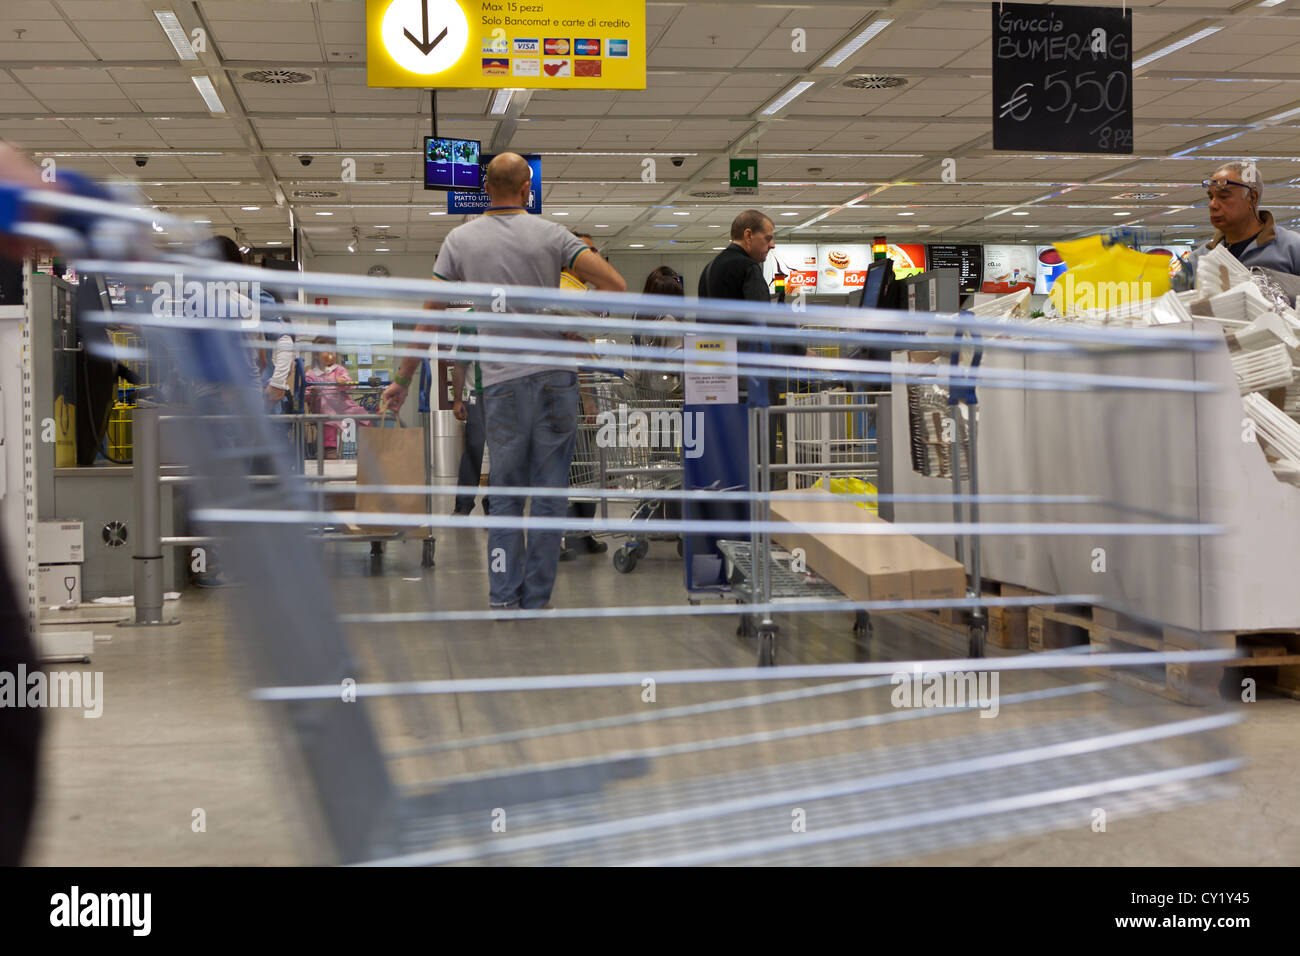 shopping trolley at ikea at rome branch CY1Y45